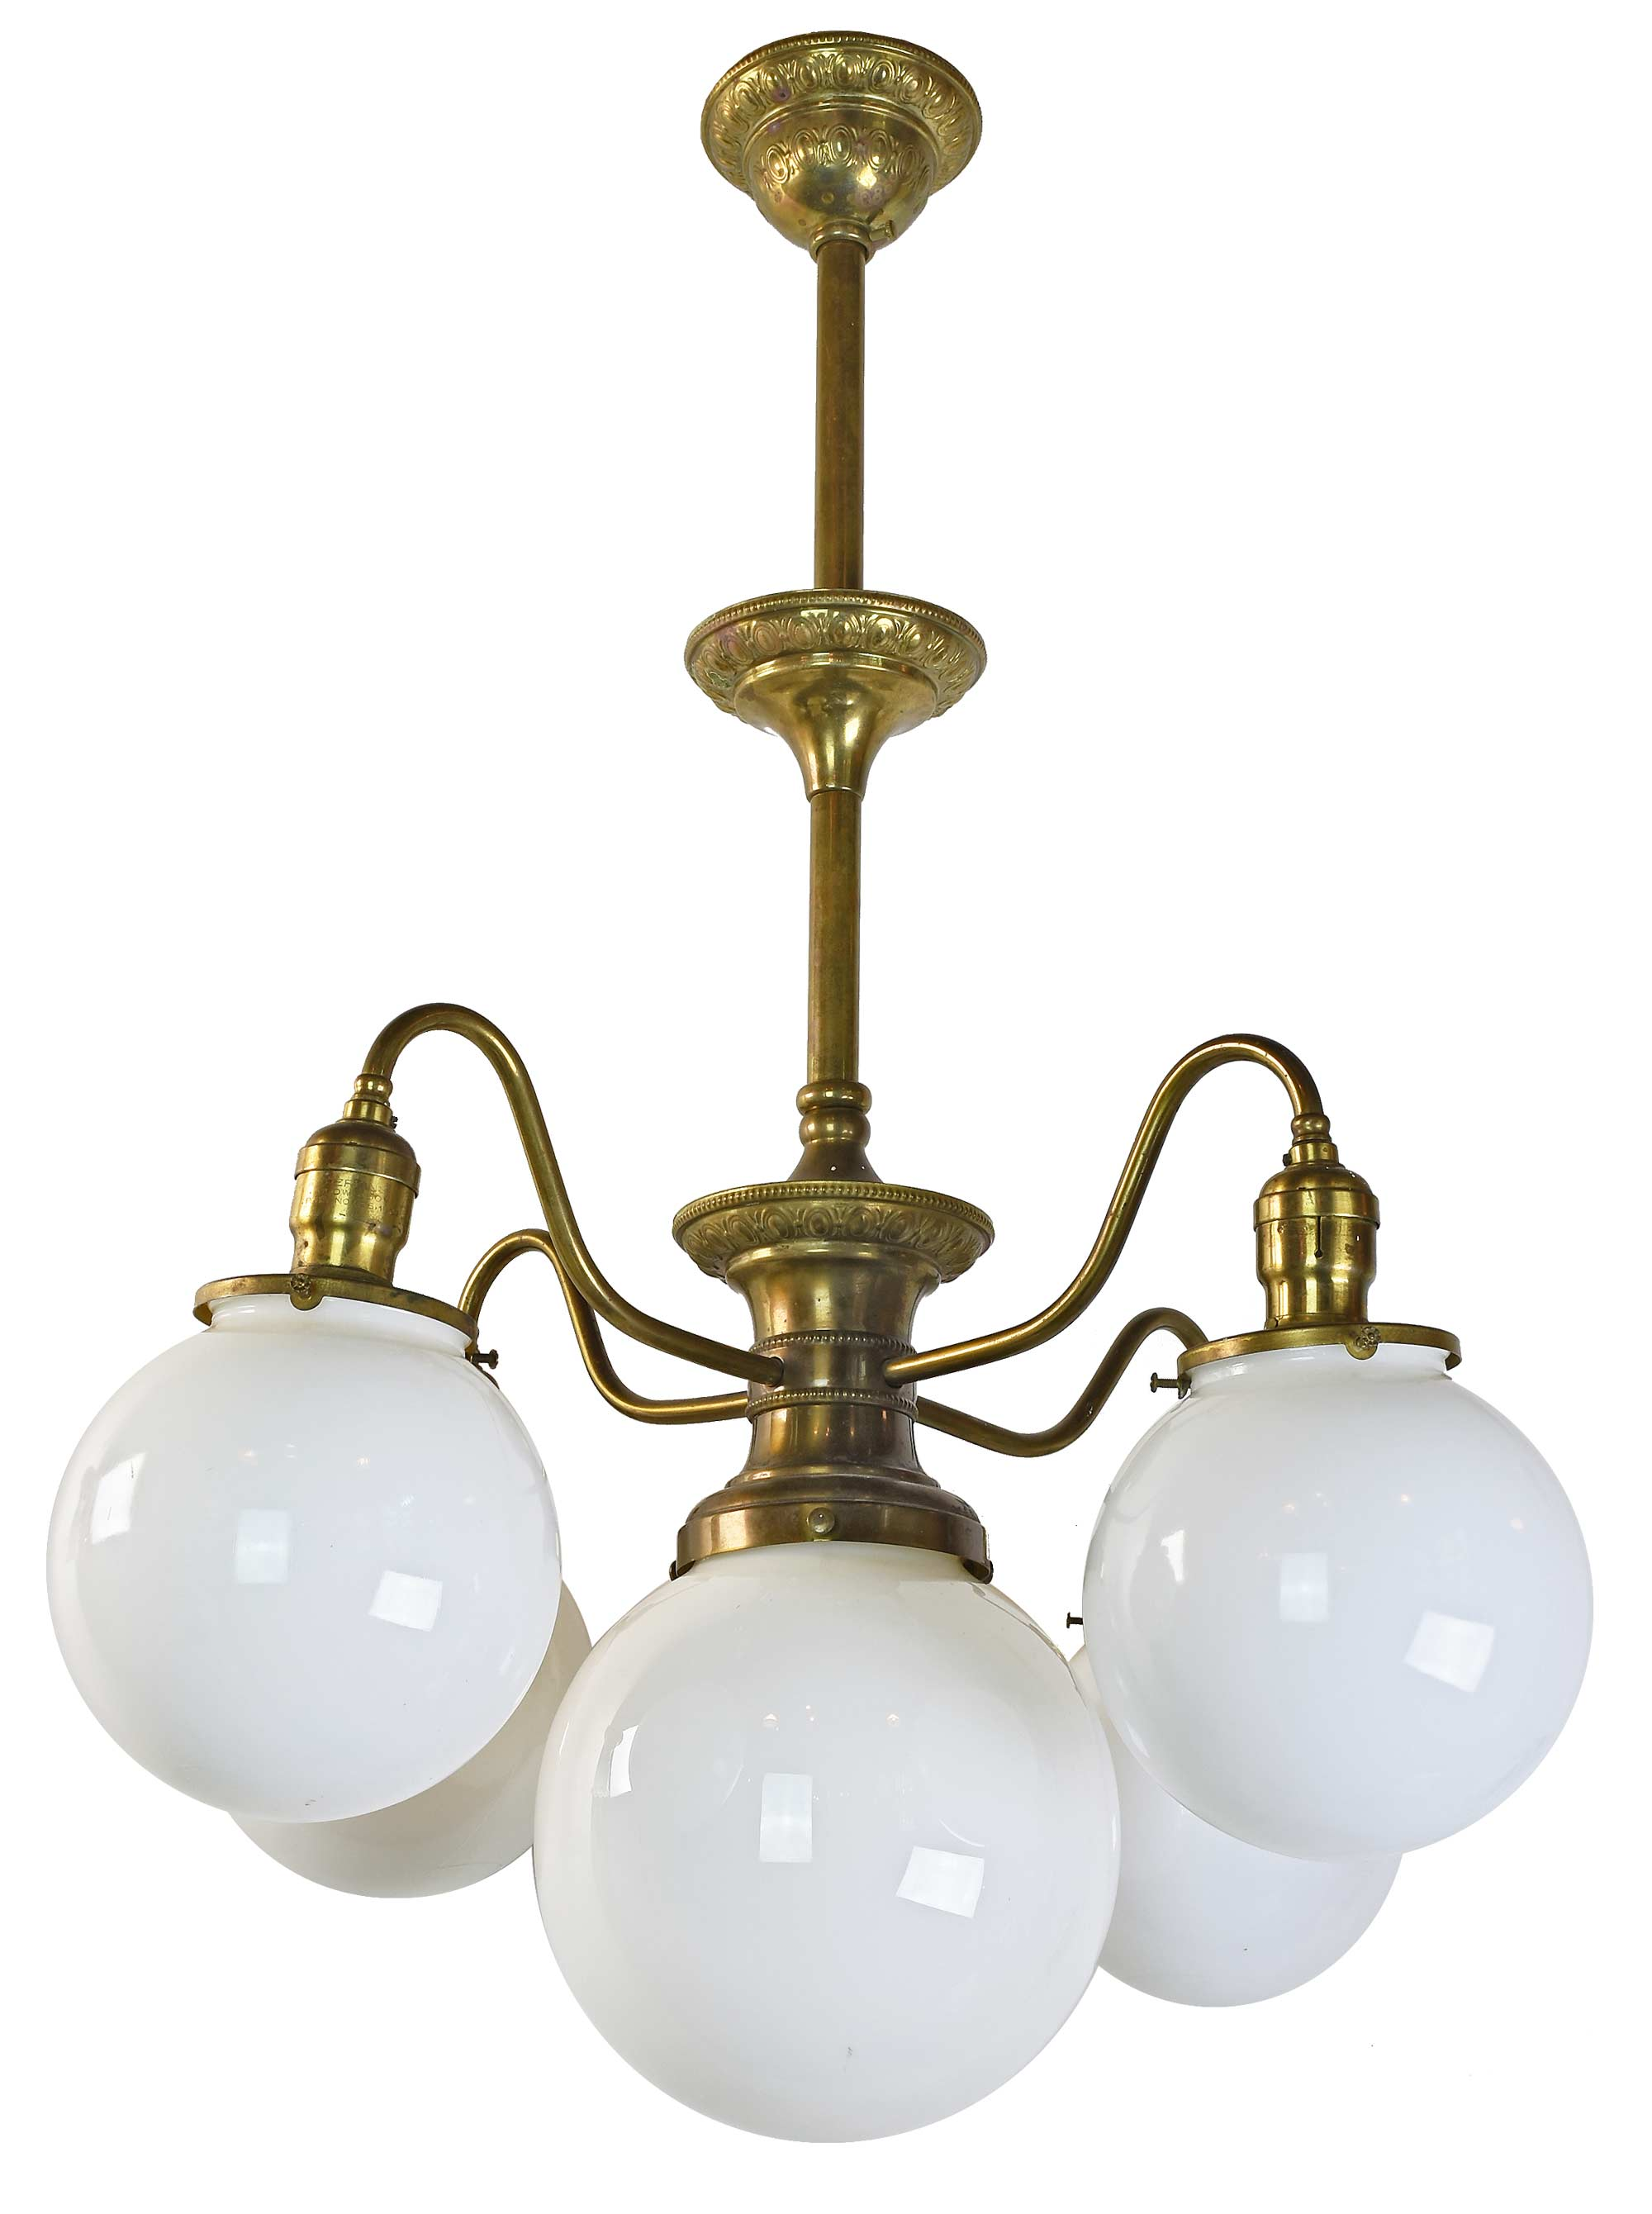 Brass 5 Light Chandelier With Globes Architectural Antiques